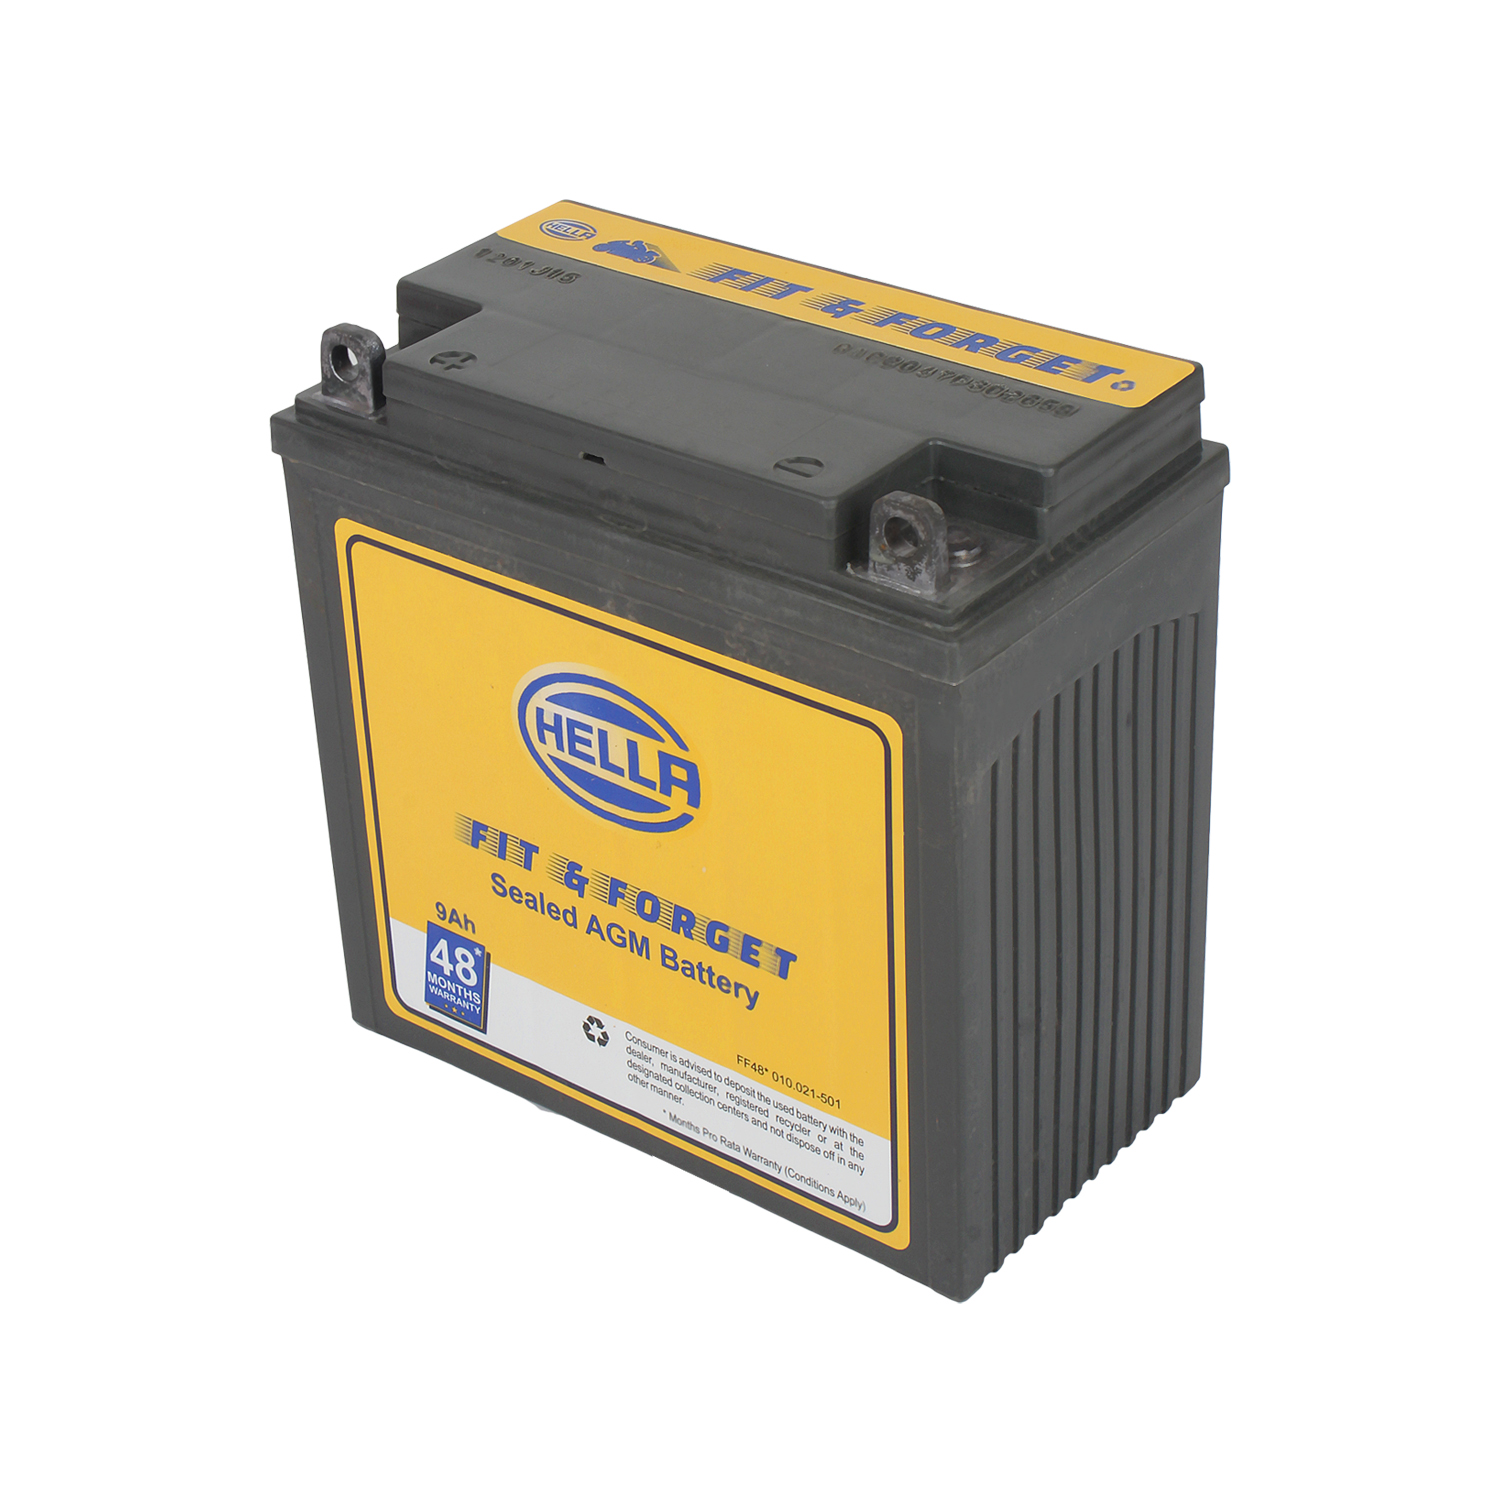 HELLA 010021501 Battery Fit N Forget 48* 9 AH